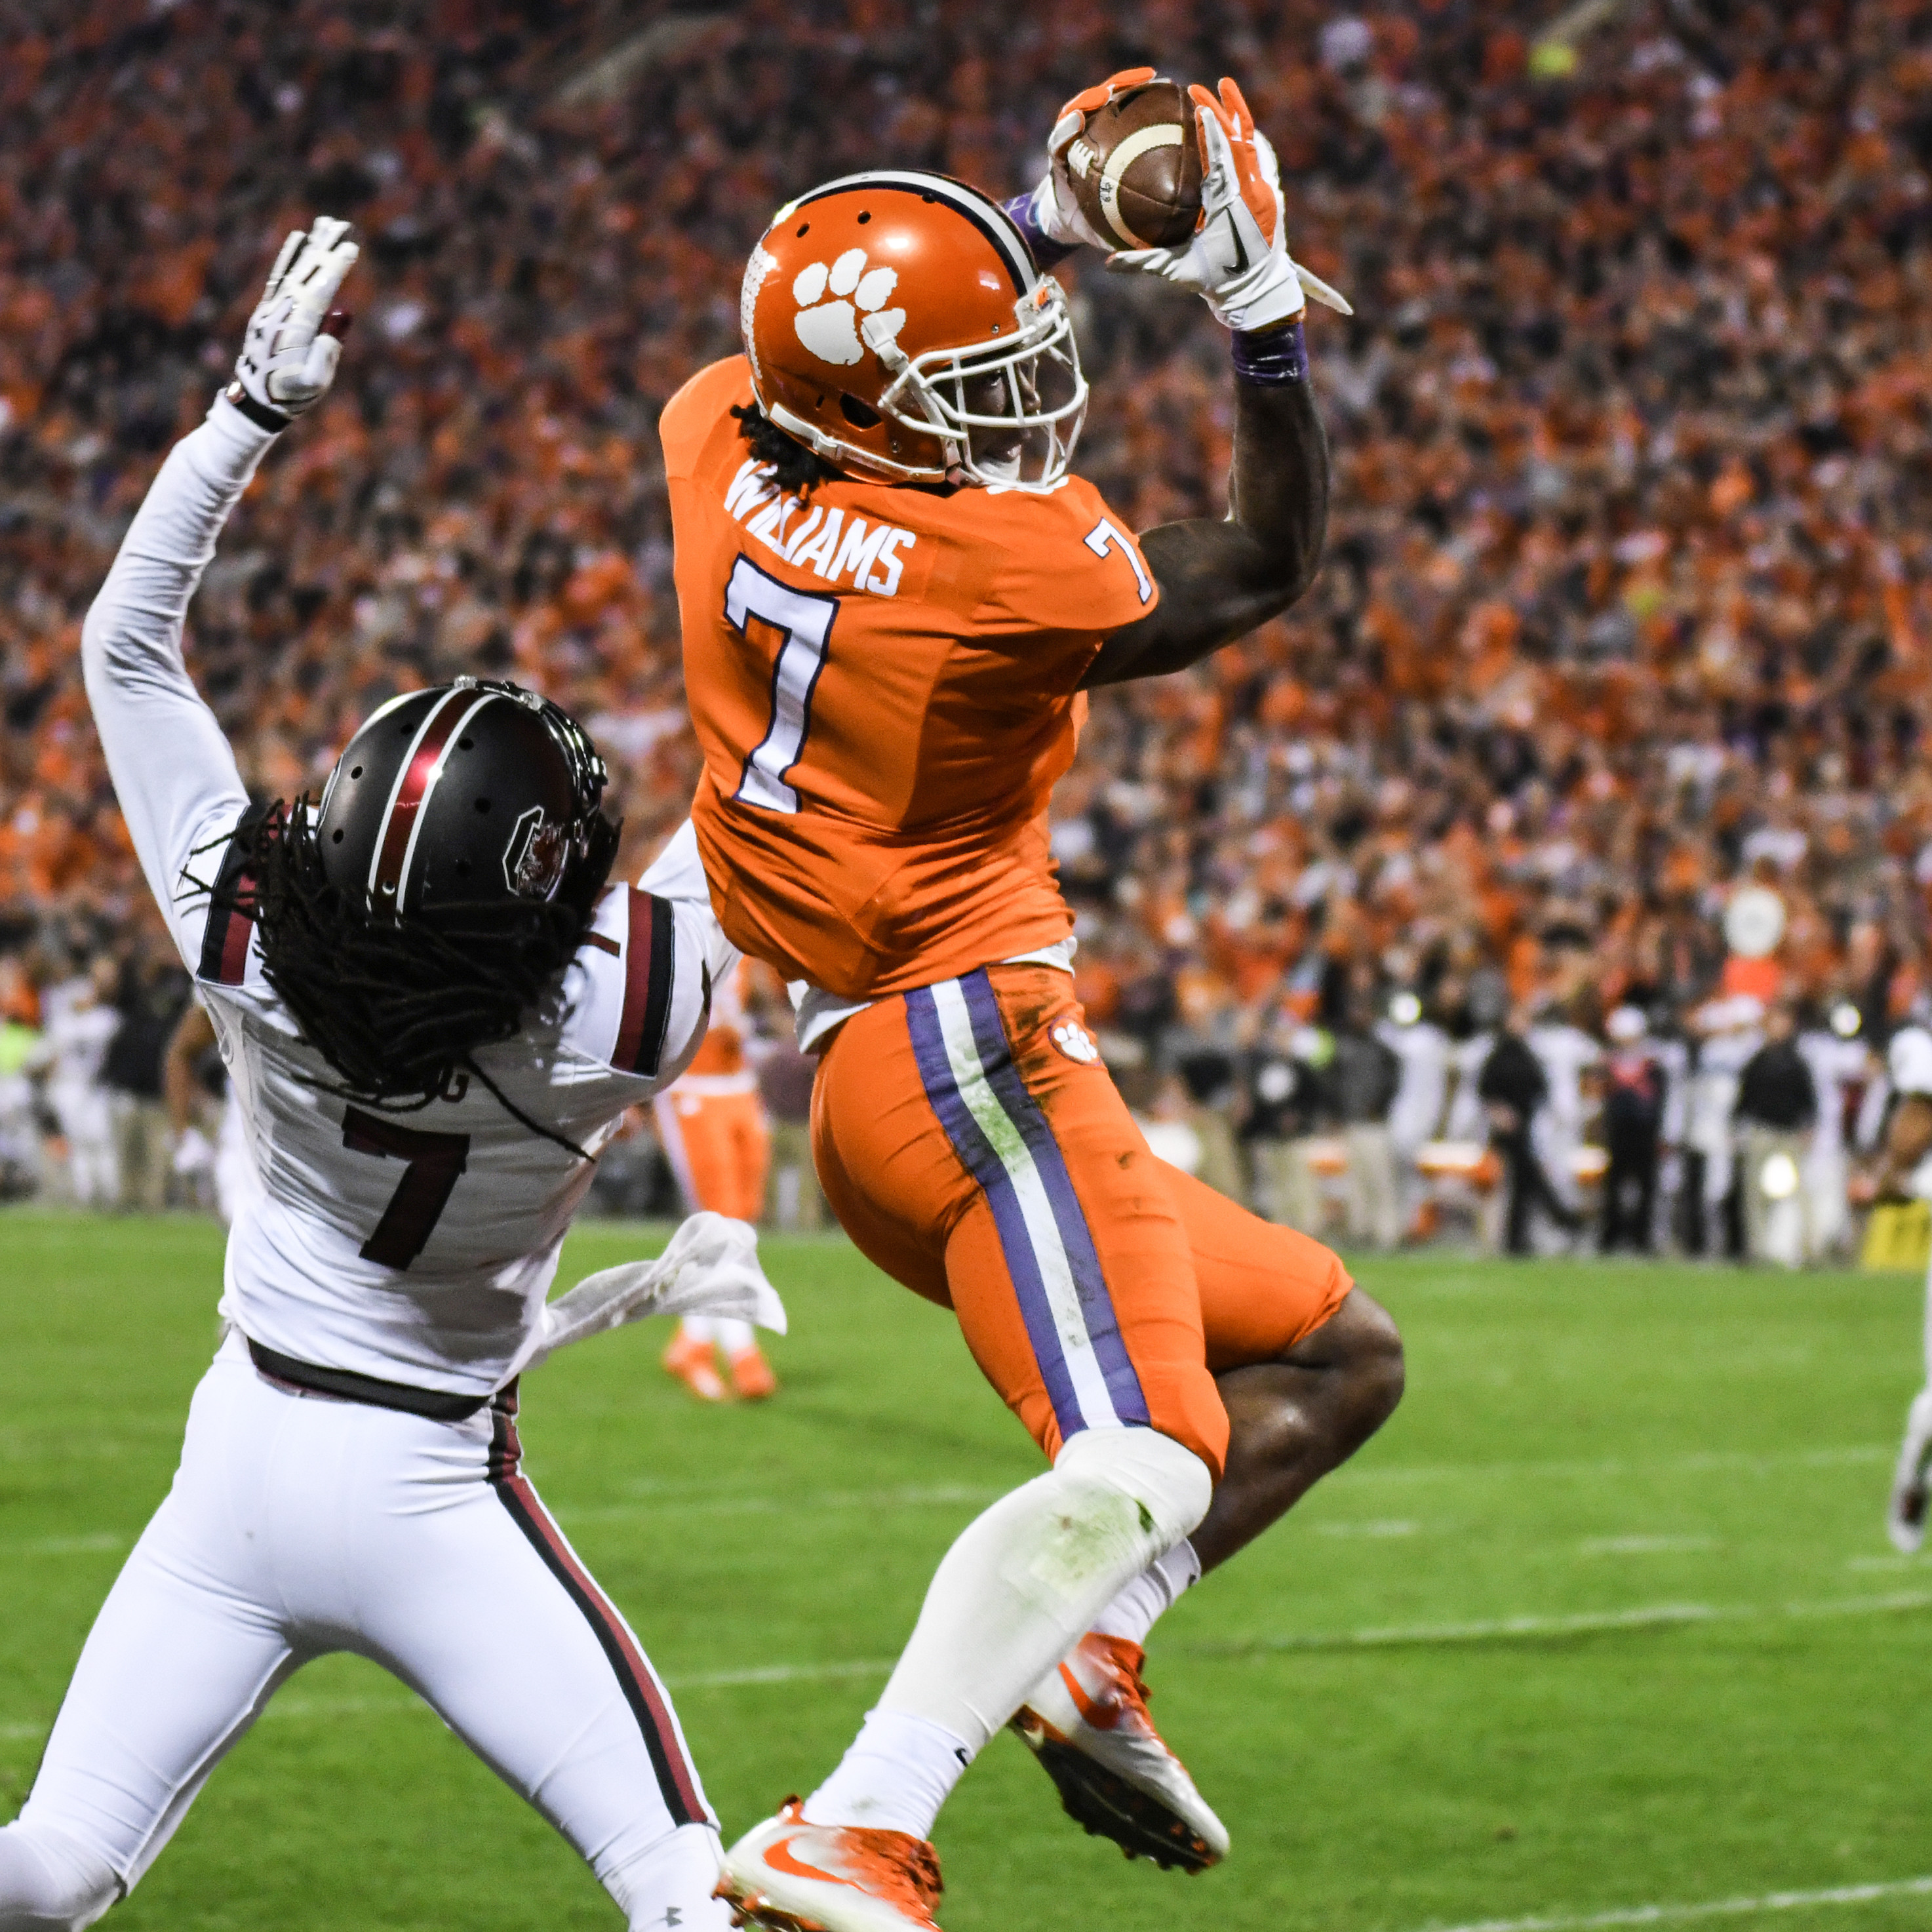 Draft Watch: Mike Williams